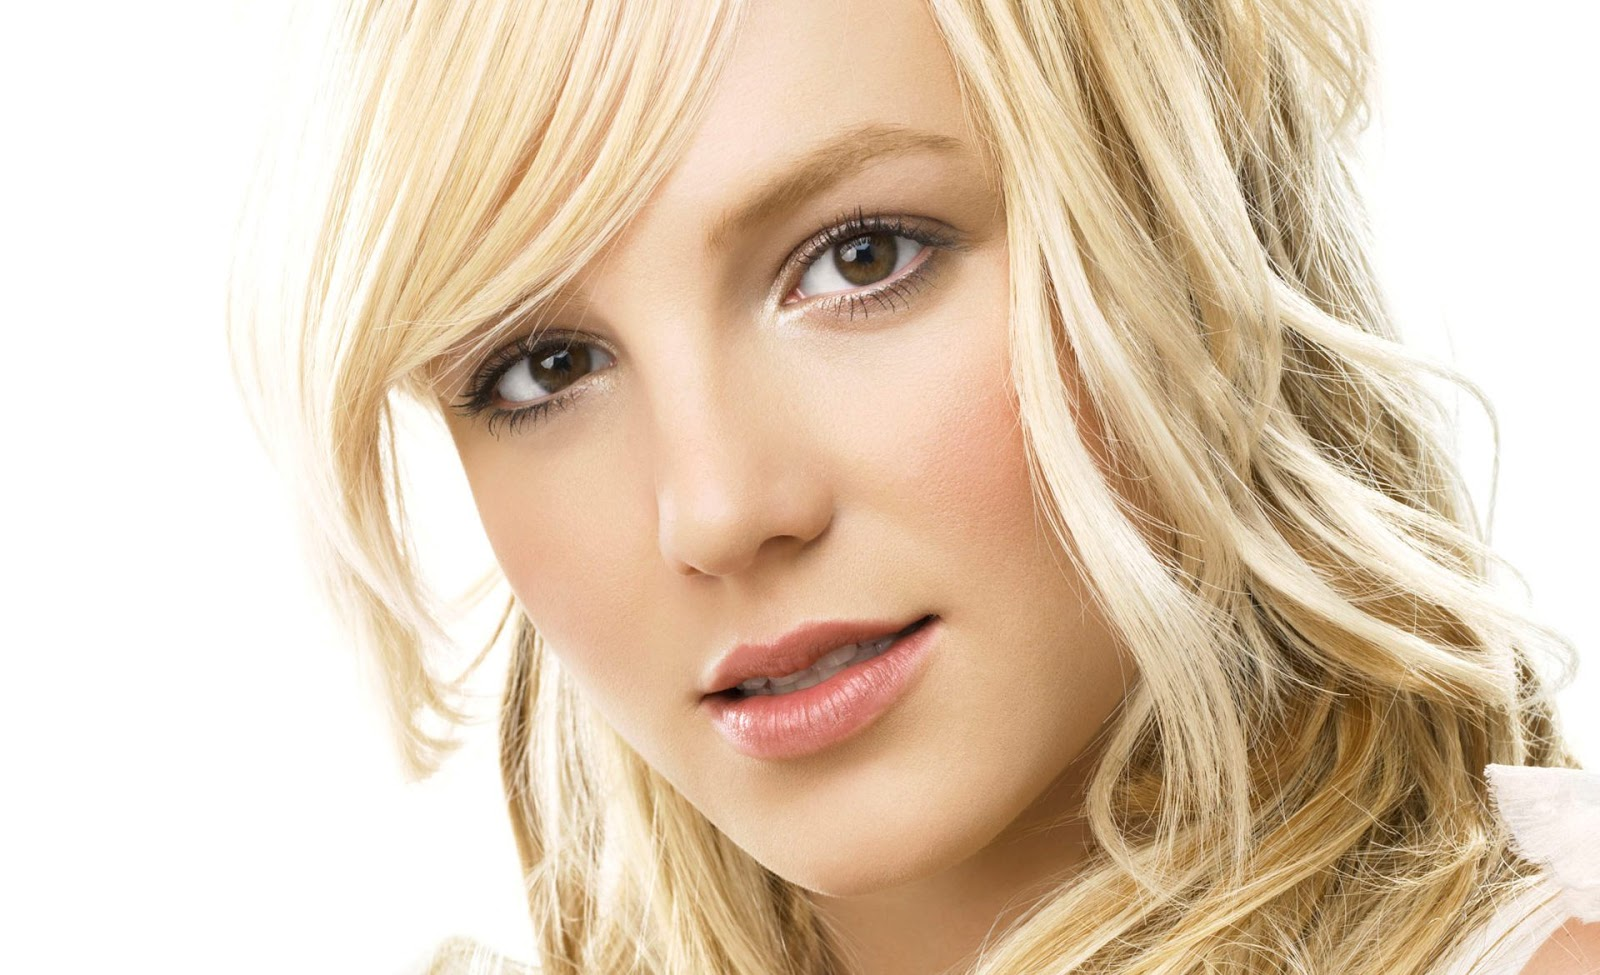 HD wallpapers: Hollywood Famous Singer Britney Spears Hot & Spicy HD 2012 Wallpapers 1920x1170